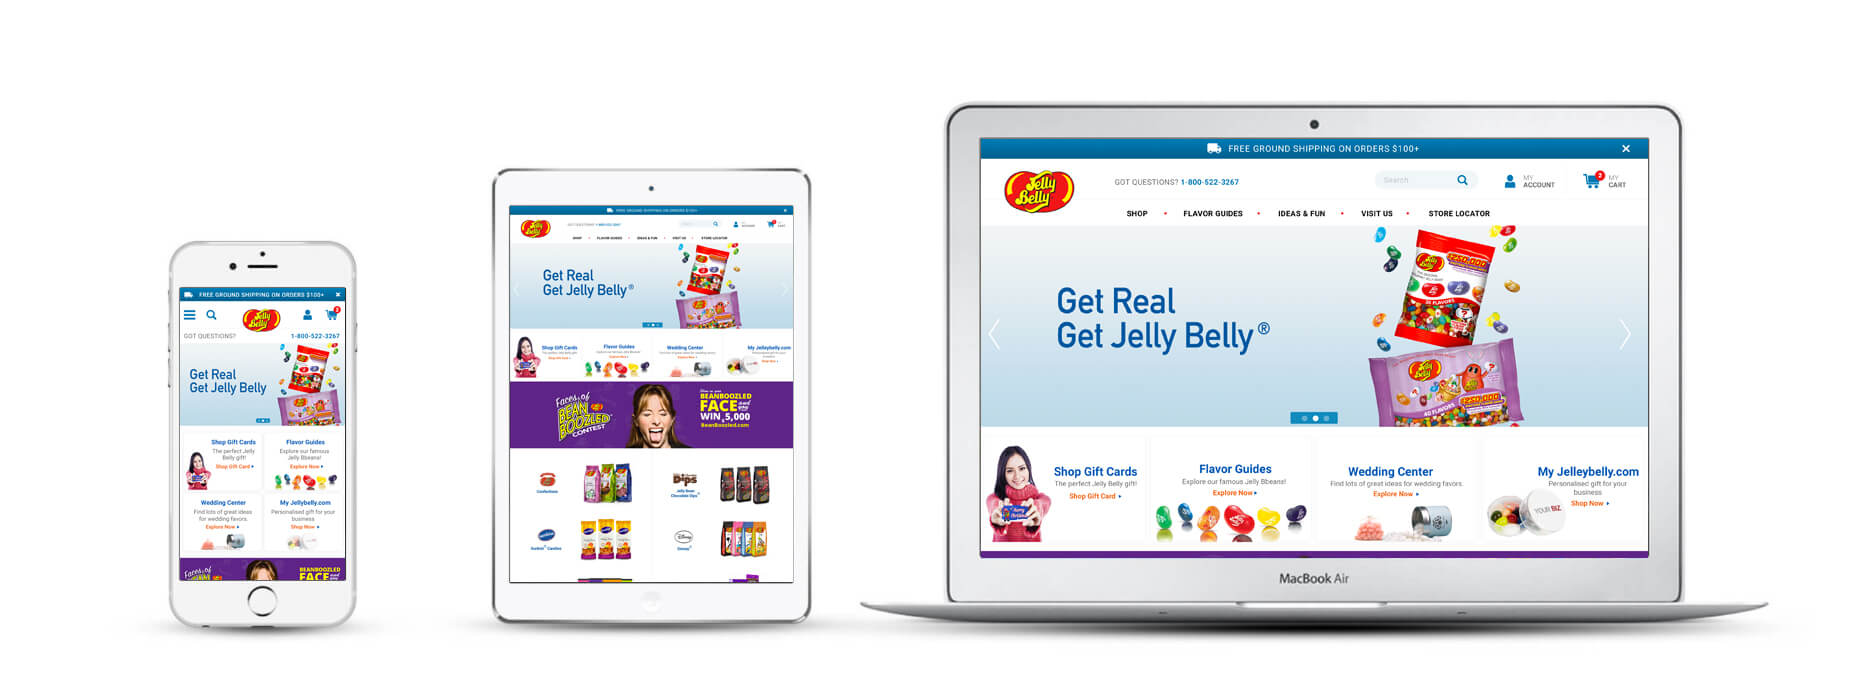 Echidna Jelly Belly Website Design Across Devices